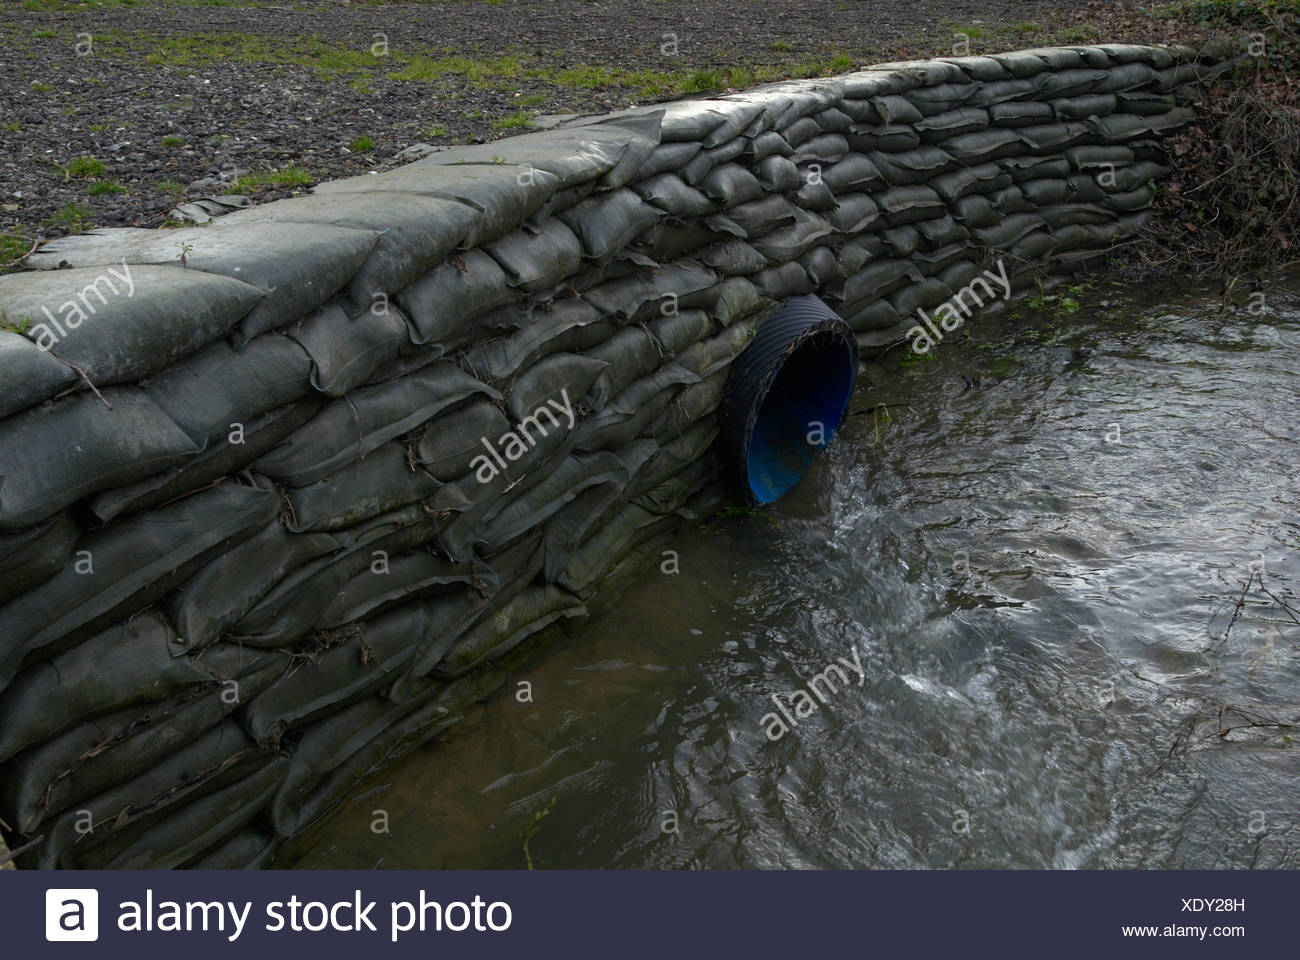 Pipe draining water into river - Stock Image